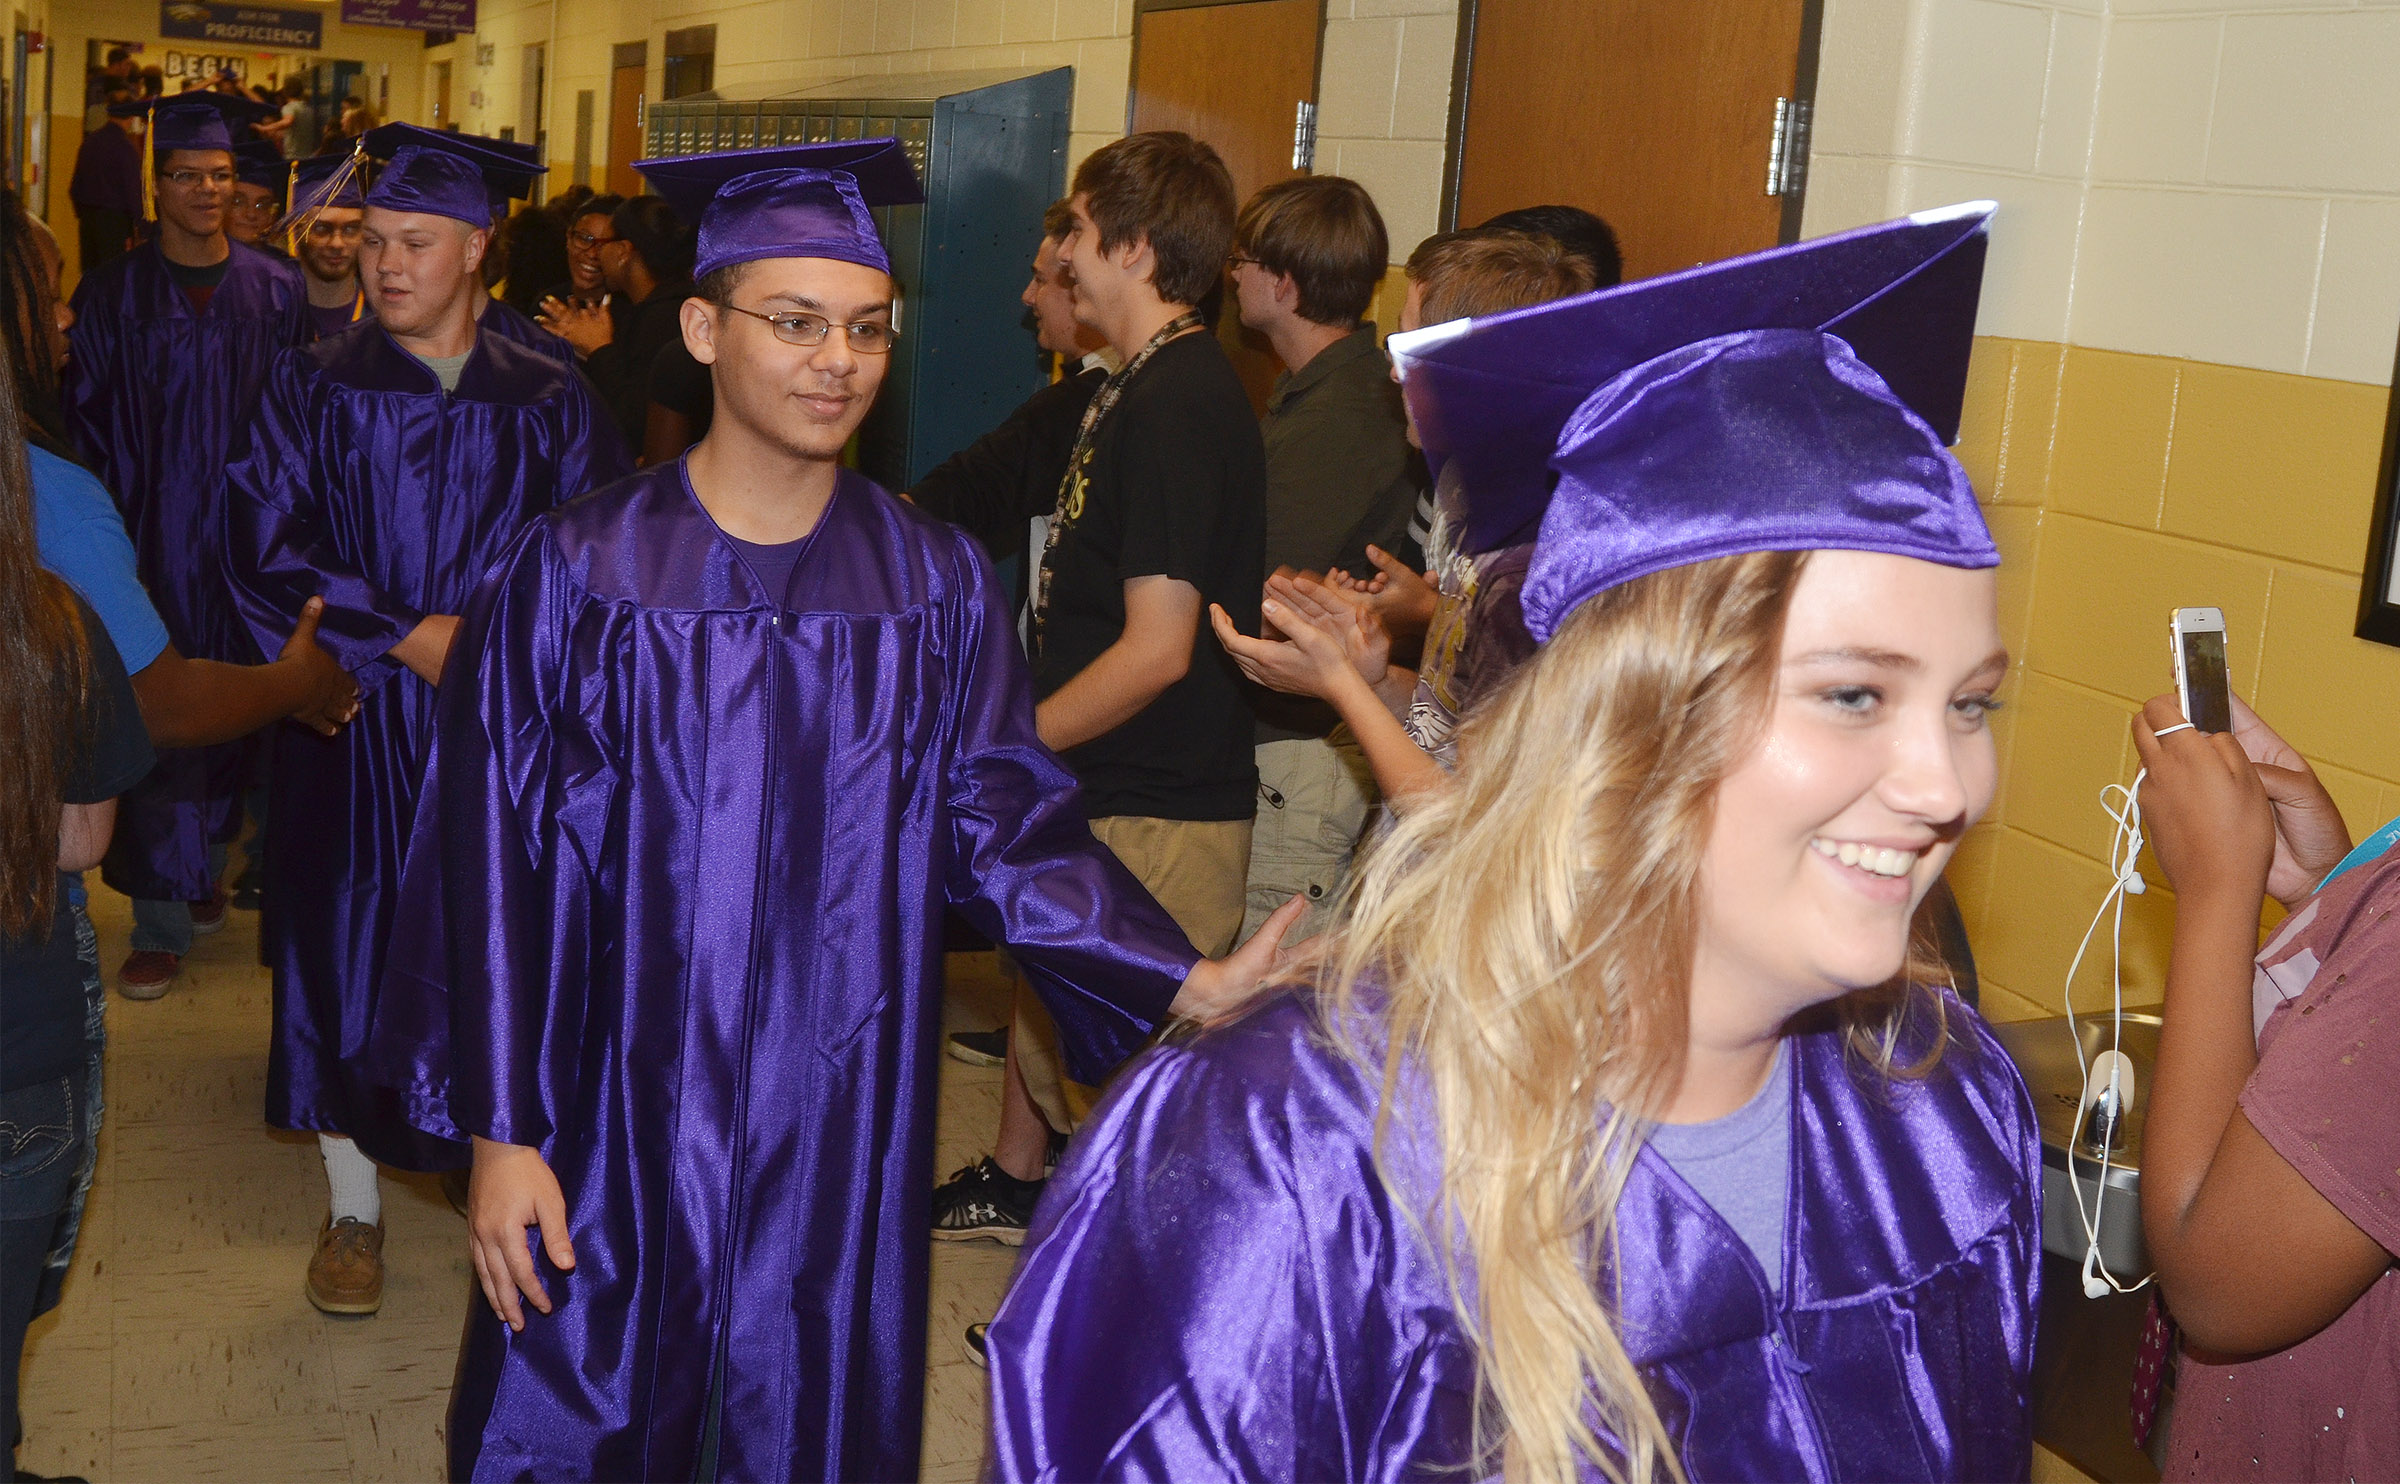 CHS senior Michael Porter, at left, and Brenna Wethington walk down the hallways at CHS with their classmates.